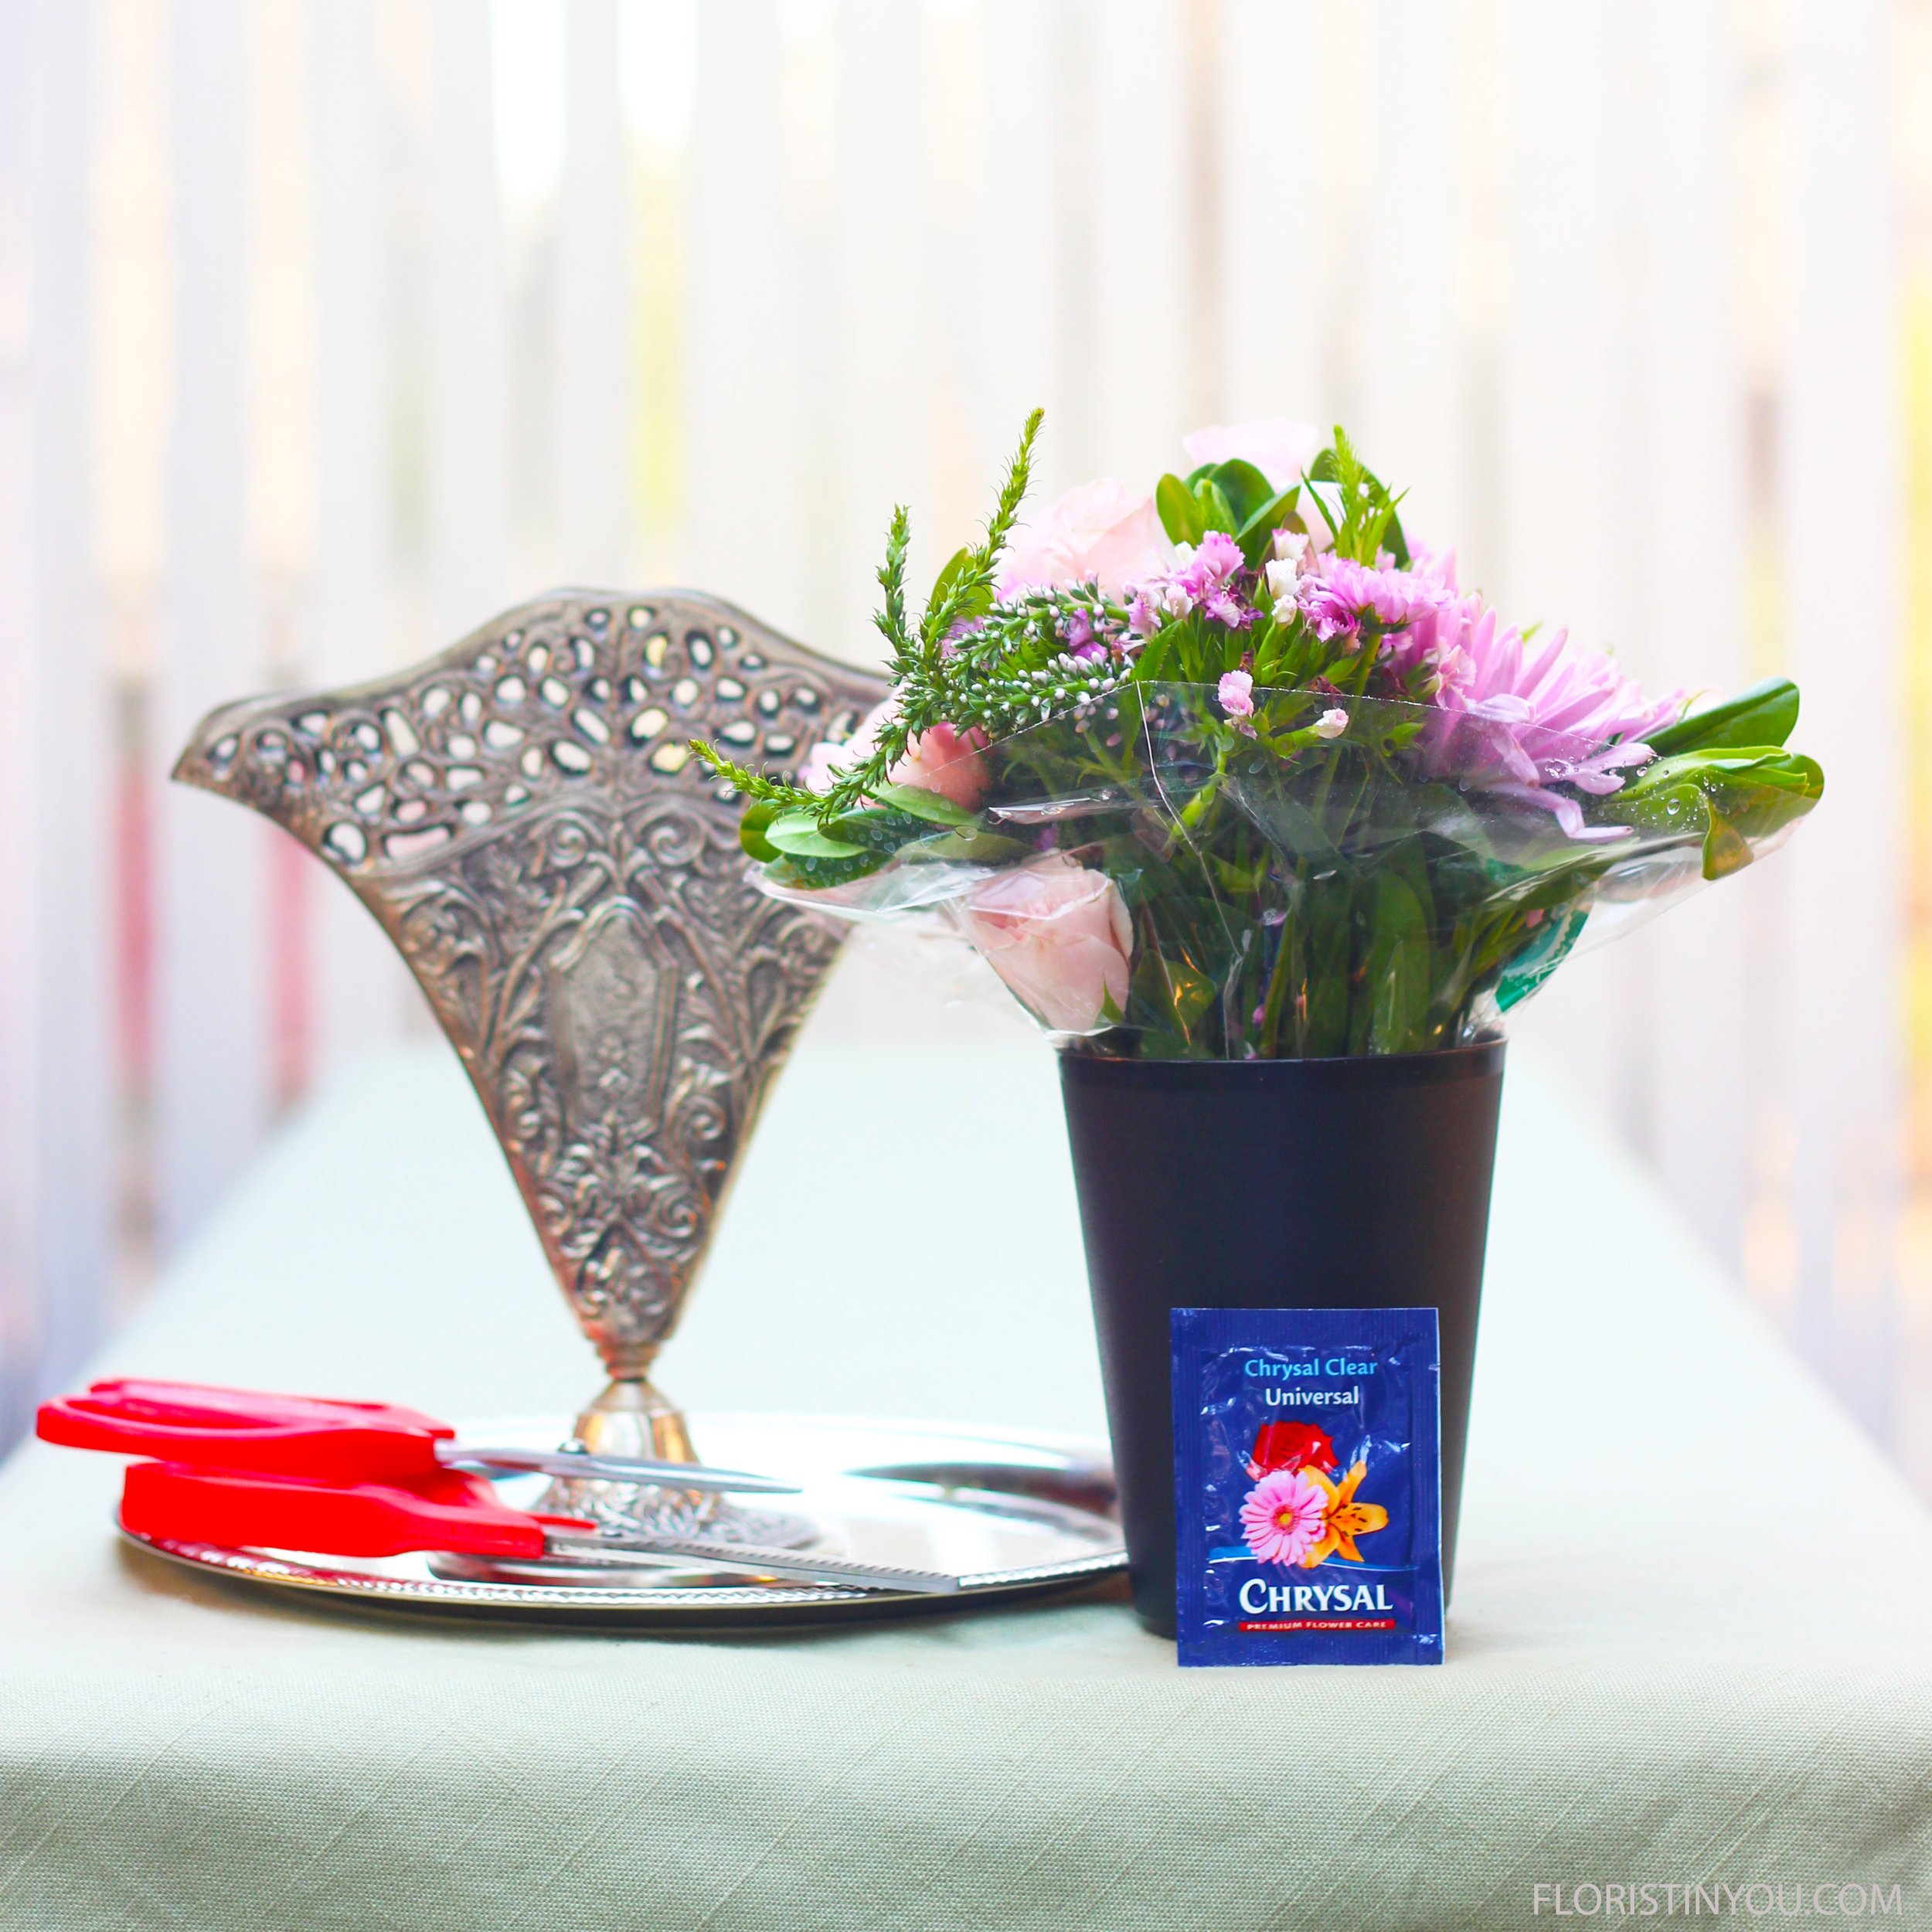 Here are your flowers, vase and materials.